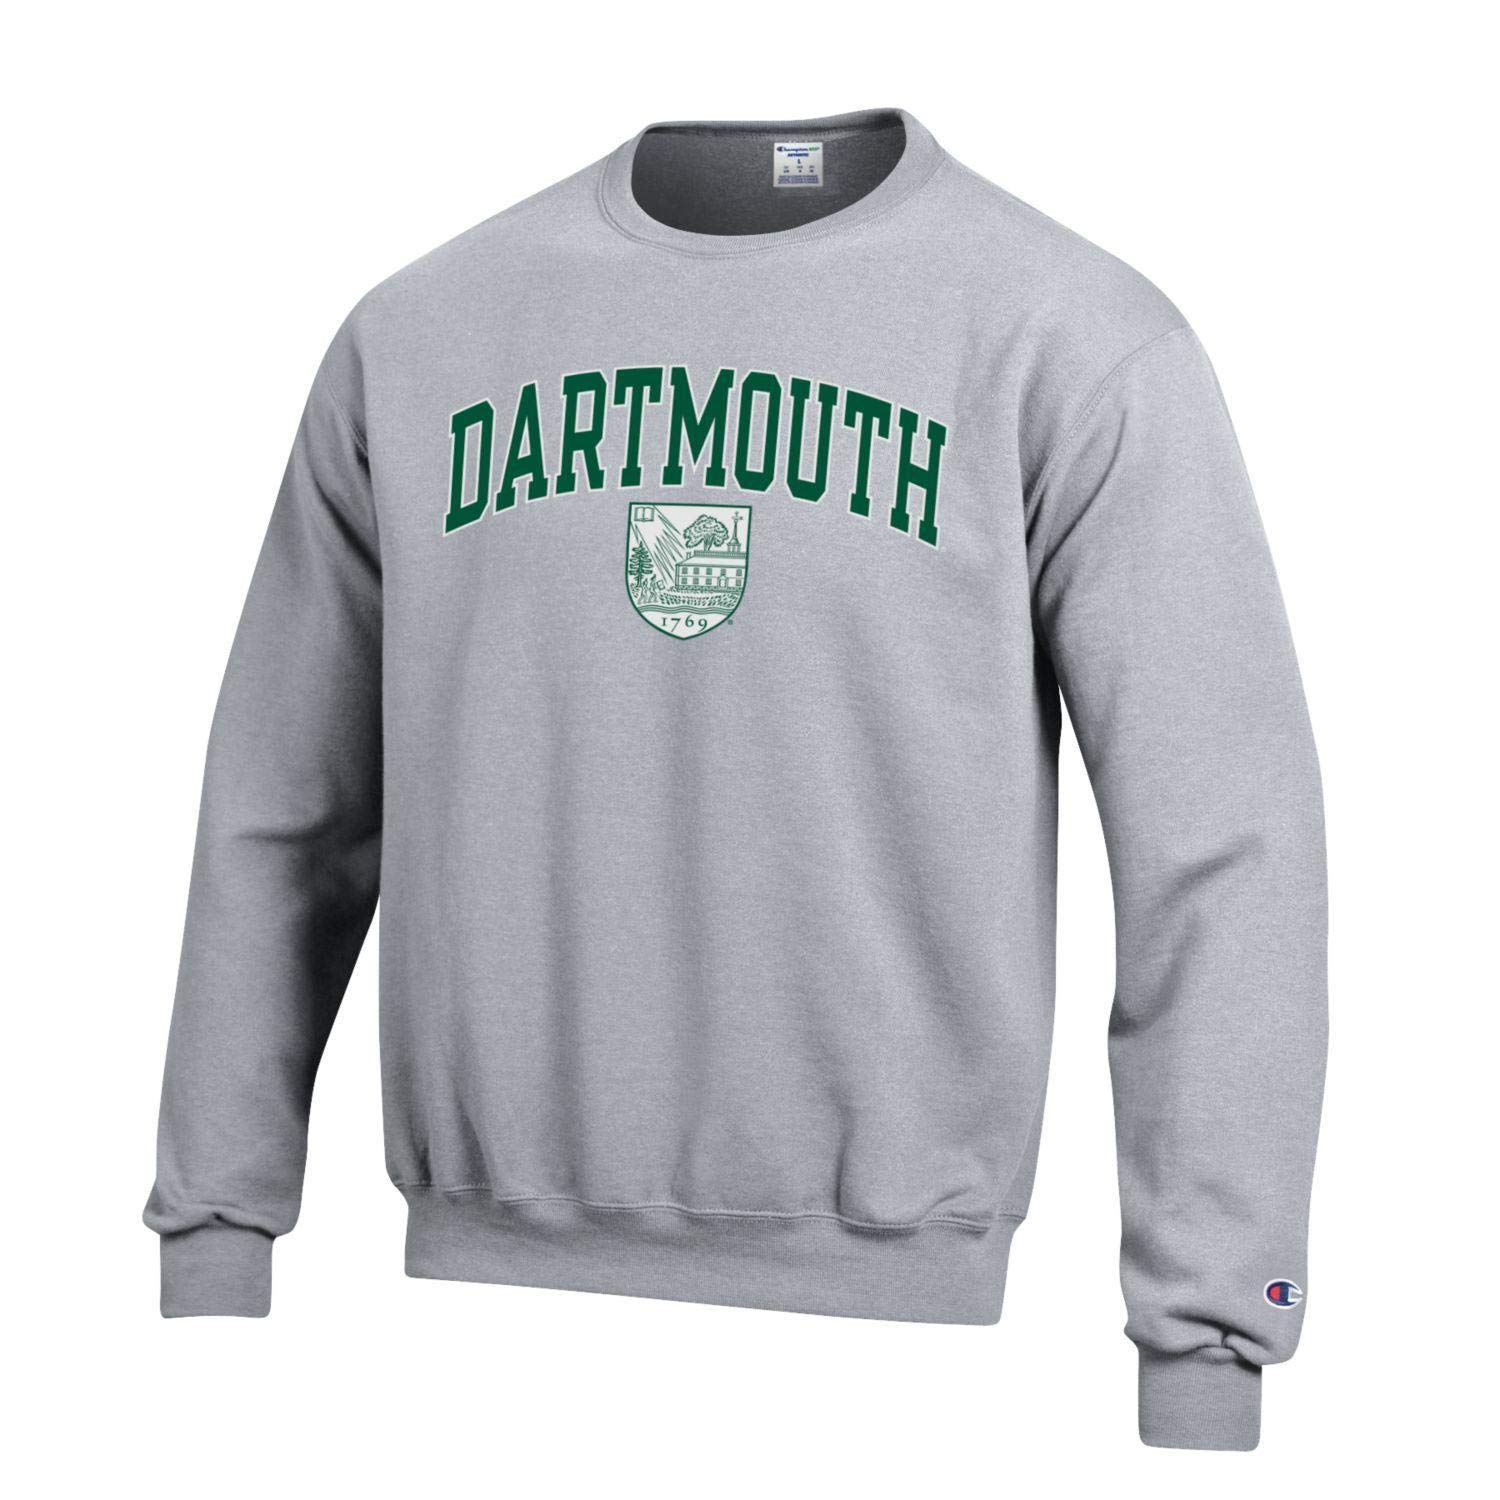 Amazon.com  Champion Dartmouth University Big Green Men\u0027s